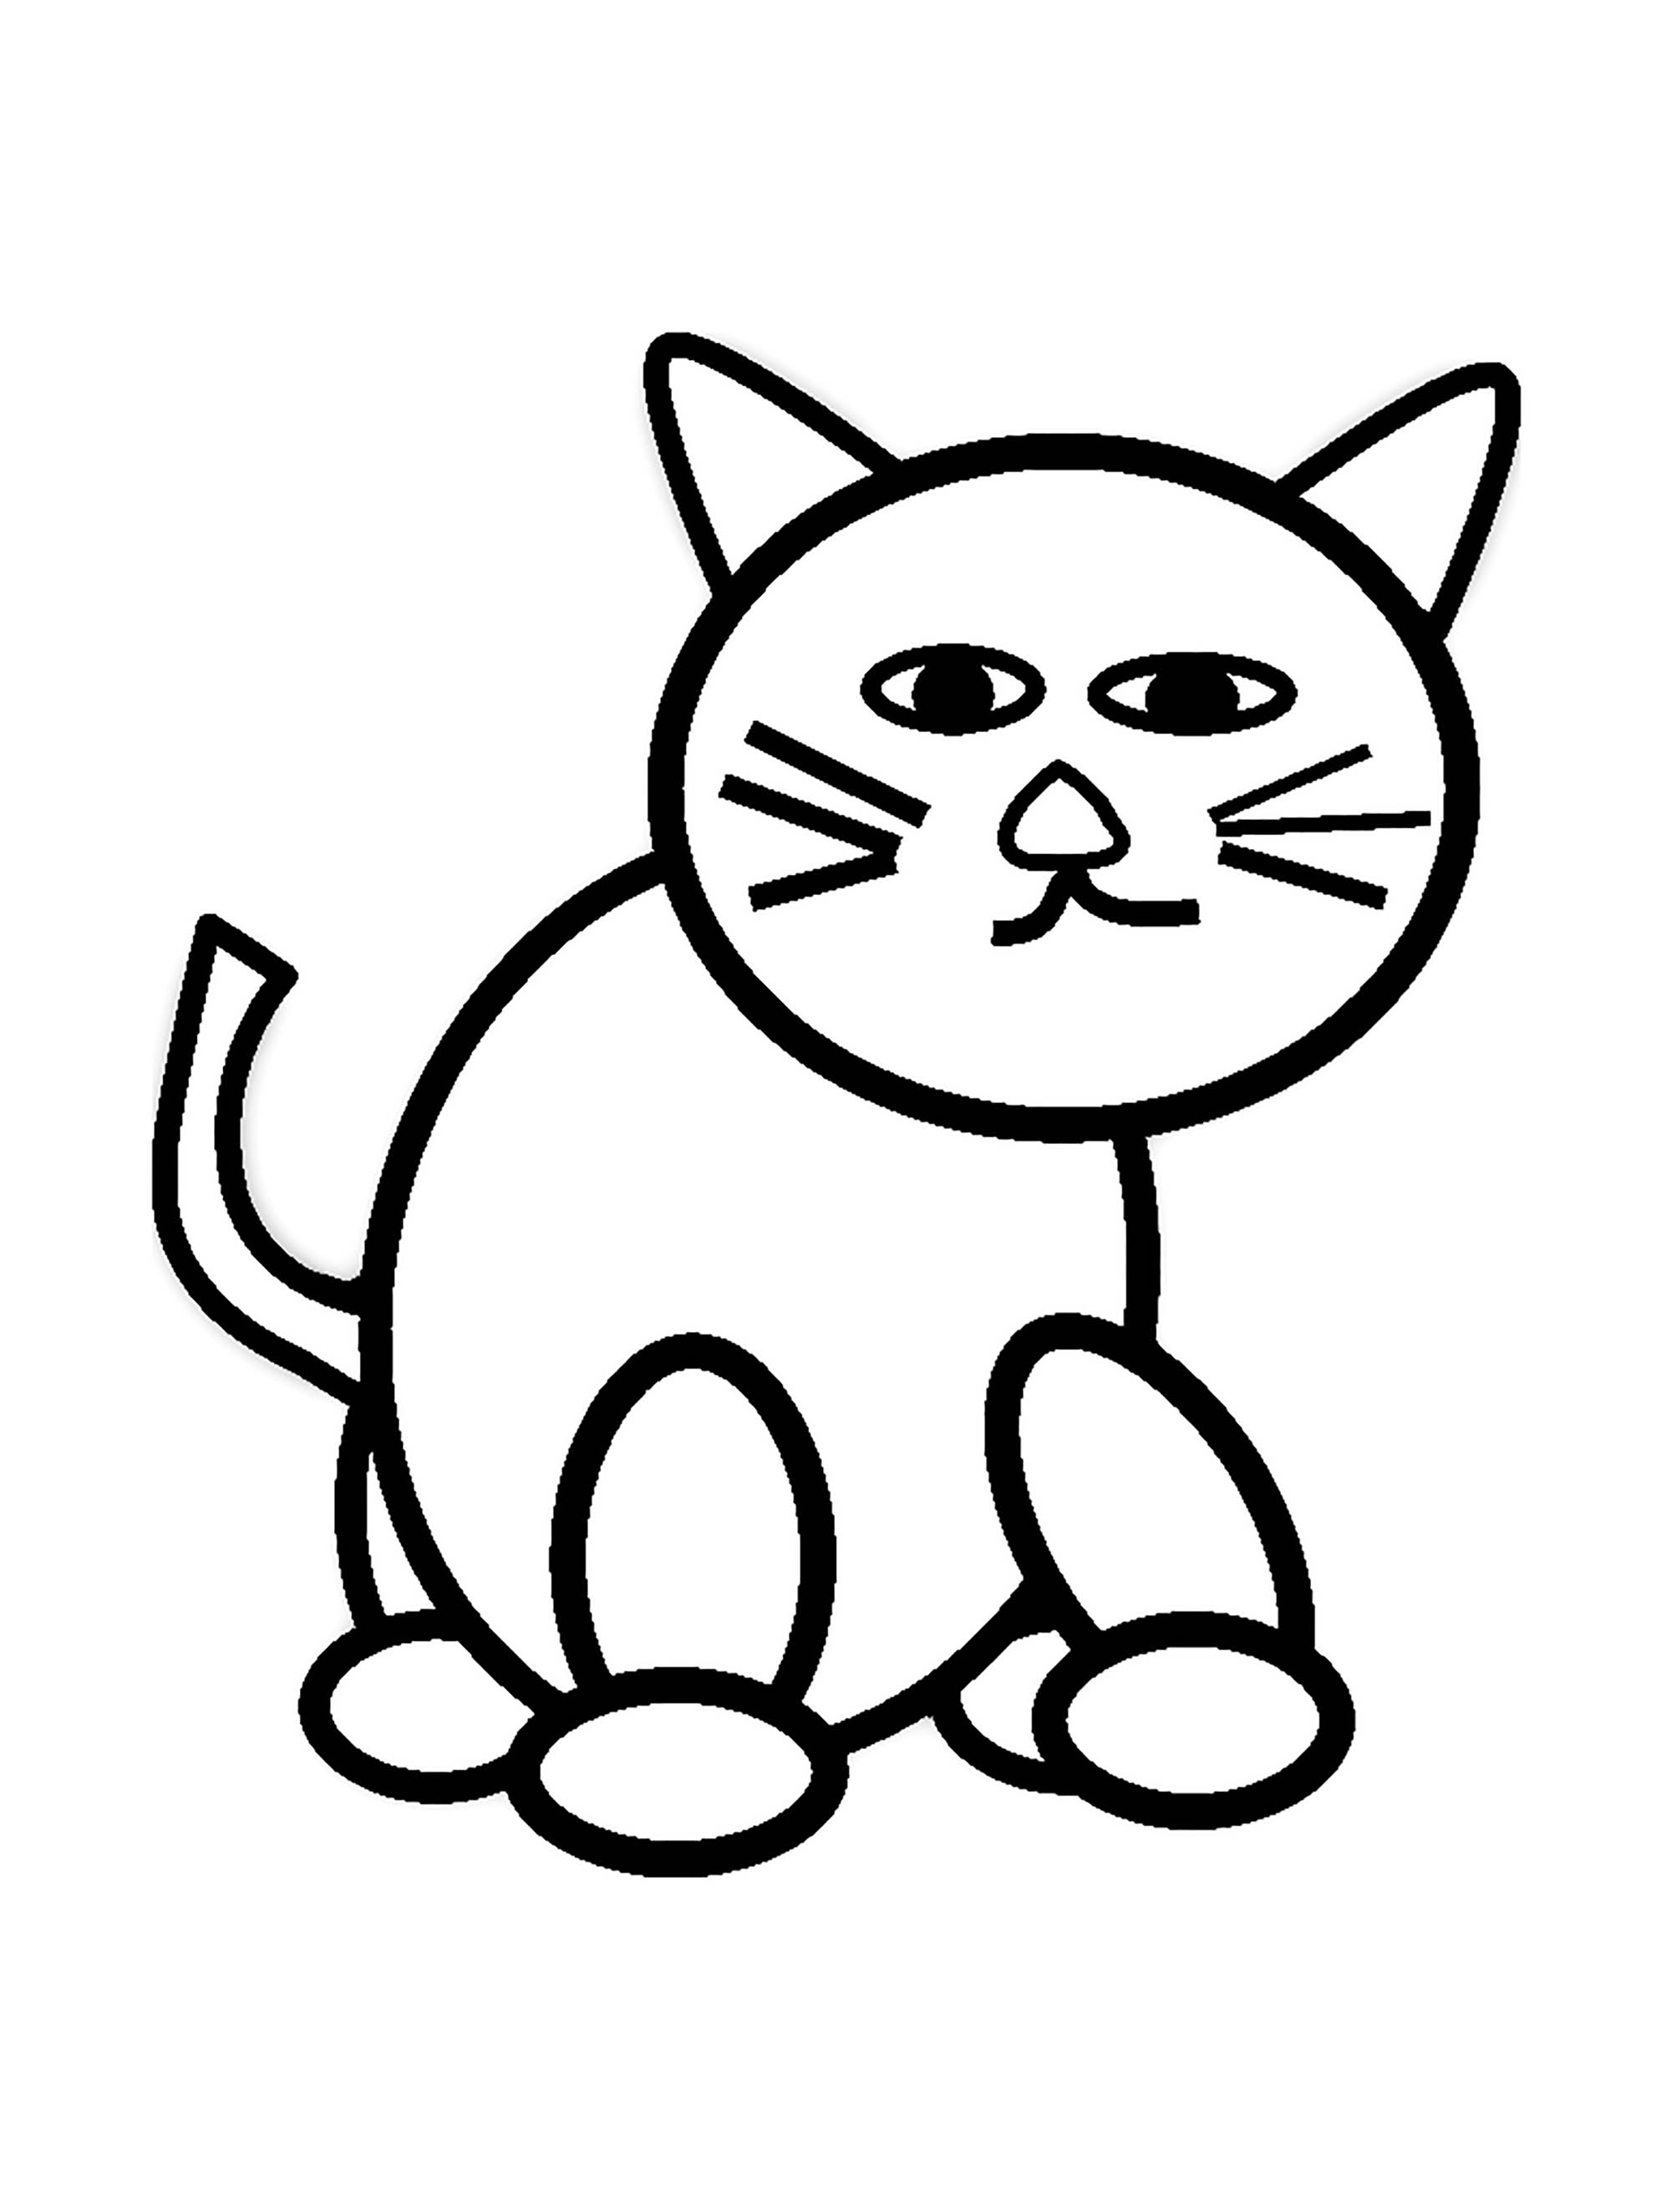 cat coloring picture kitten coloring pages best coloring pages for kids picture cat coloring